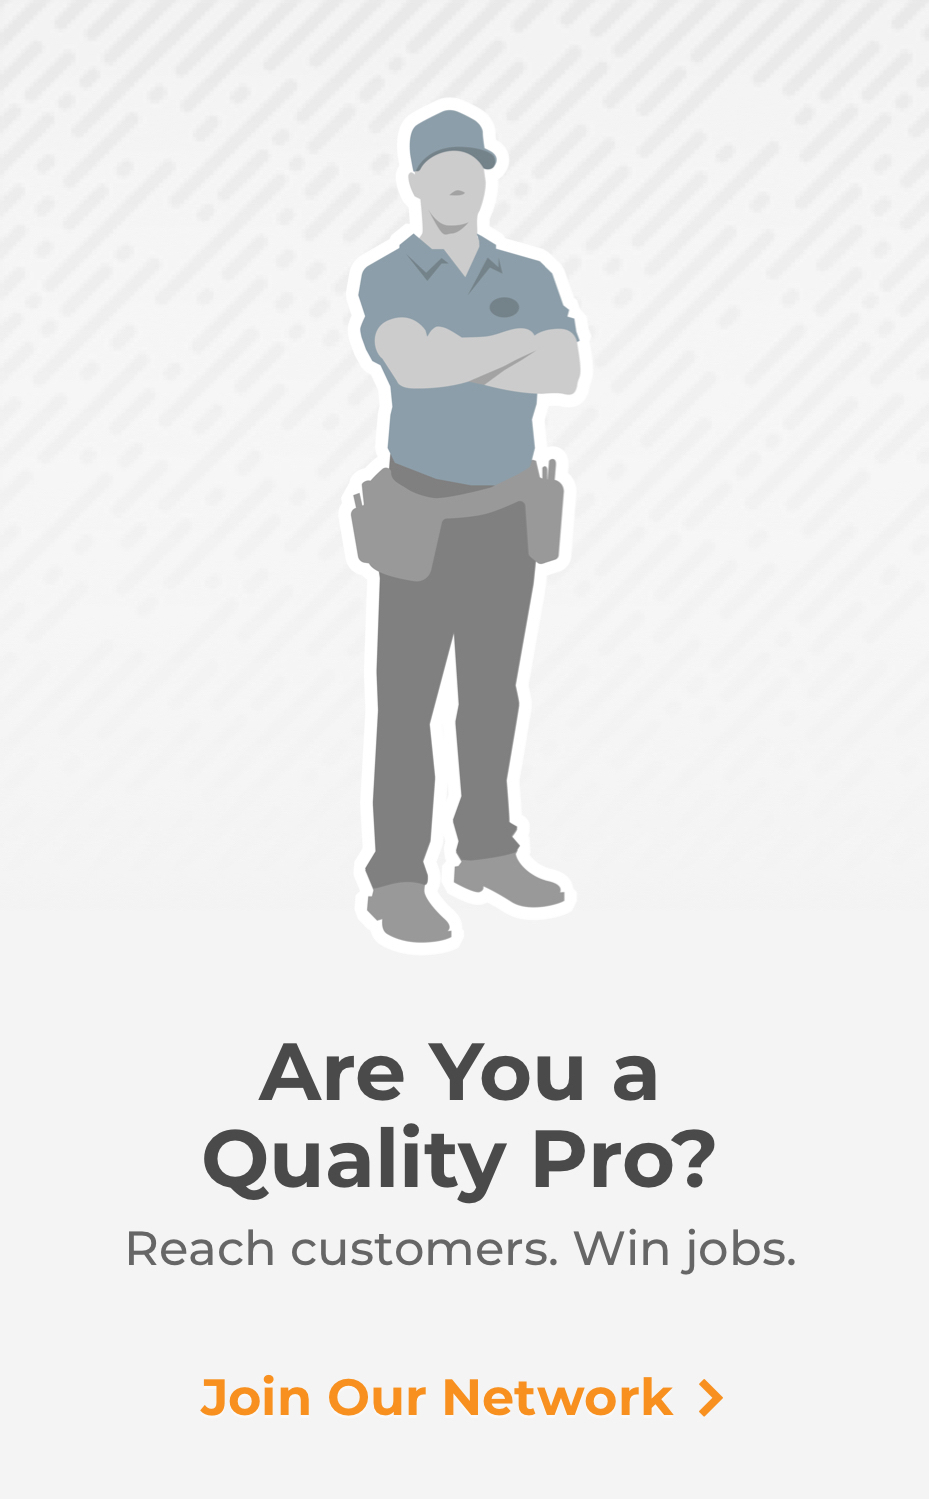 medium resolution of are you a quality pro reach customers win jobs join our network